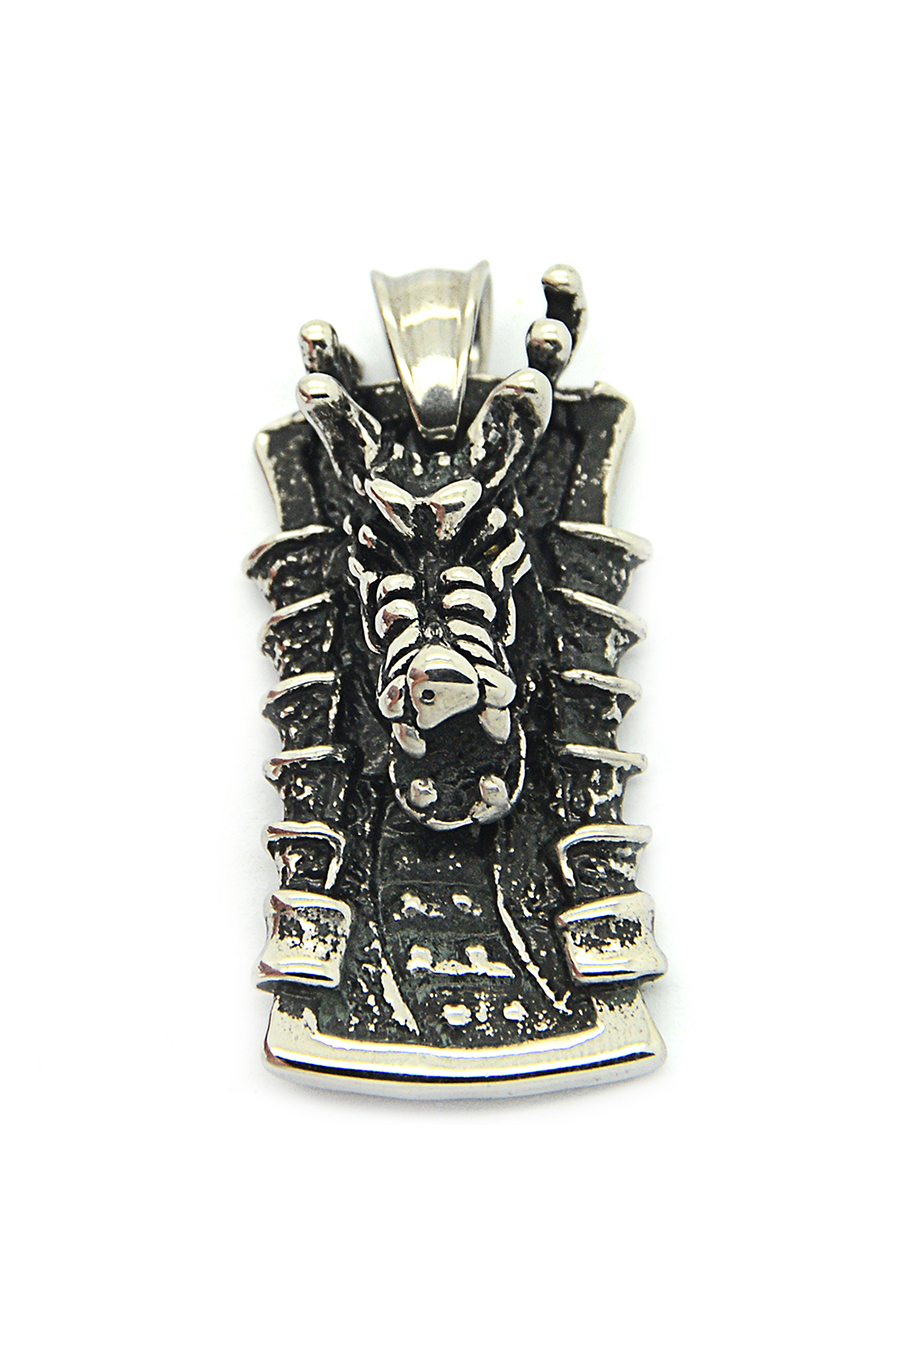 2015 Charm Band Classic Vintage Dragon Staless Steel Pendant Men,Fine Jewelry Silver Black - ironsoul Store store